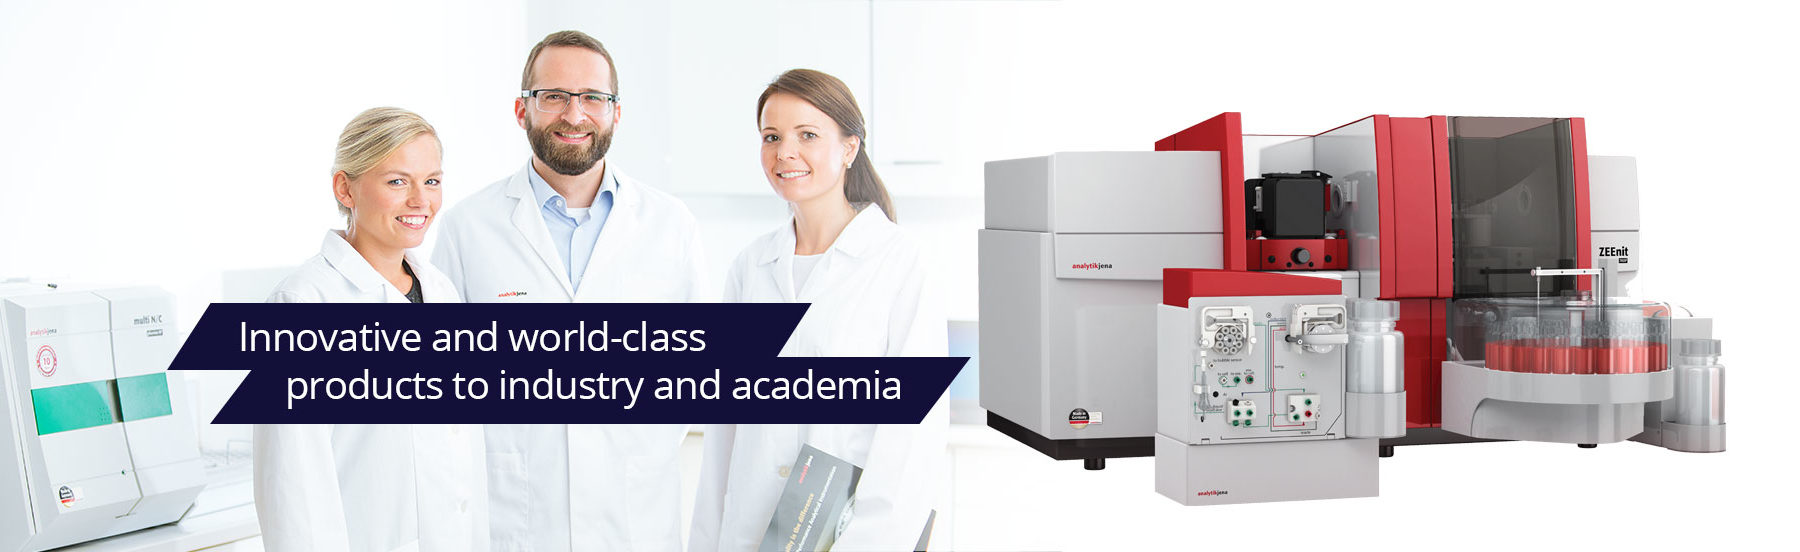 Innovative and world class products to industry and academia